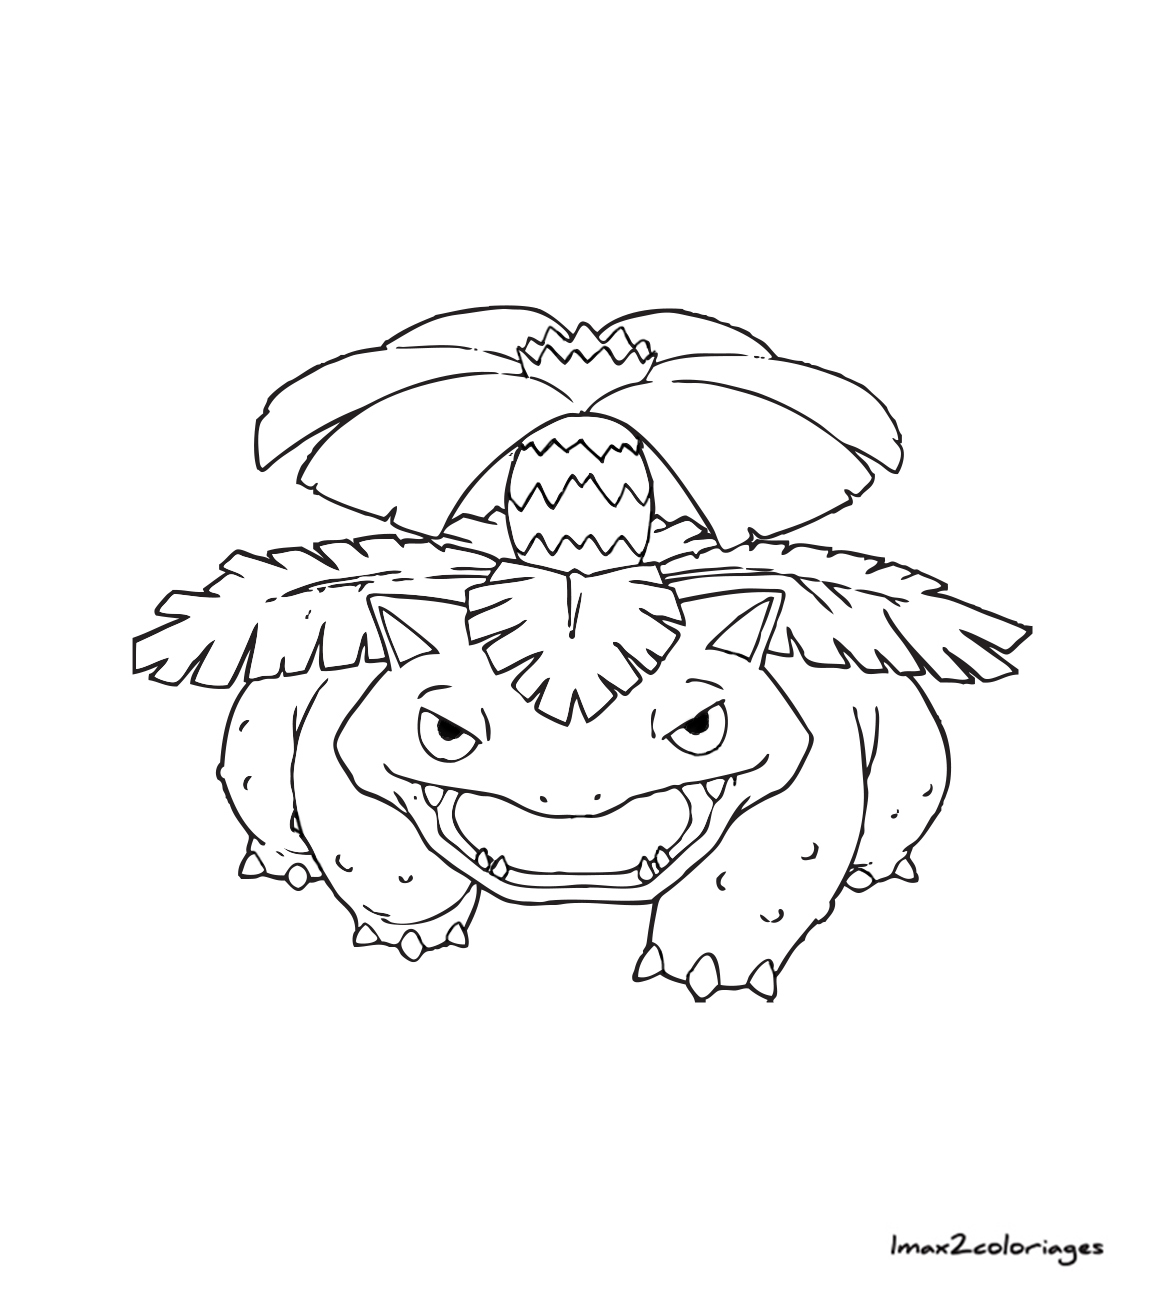 Coloriages pokemon florizarre - Pokemon florizarre ...